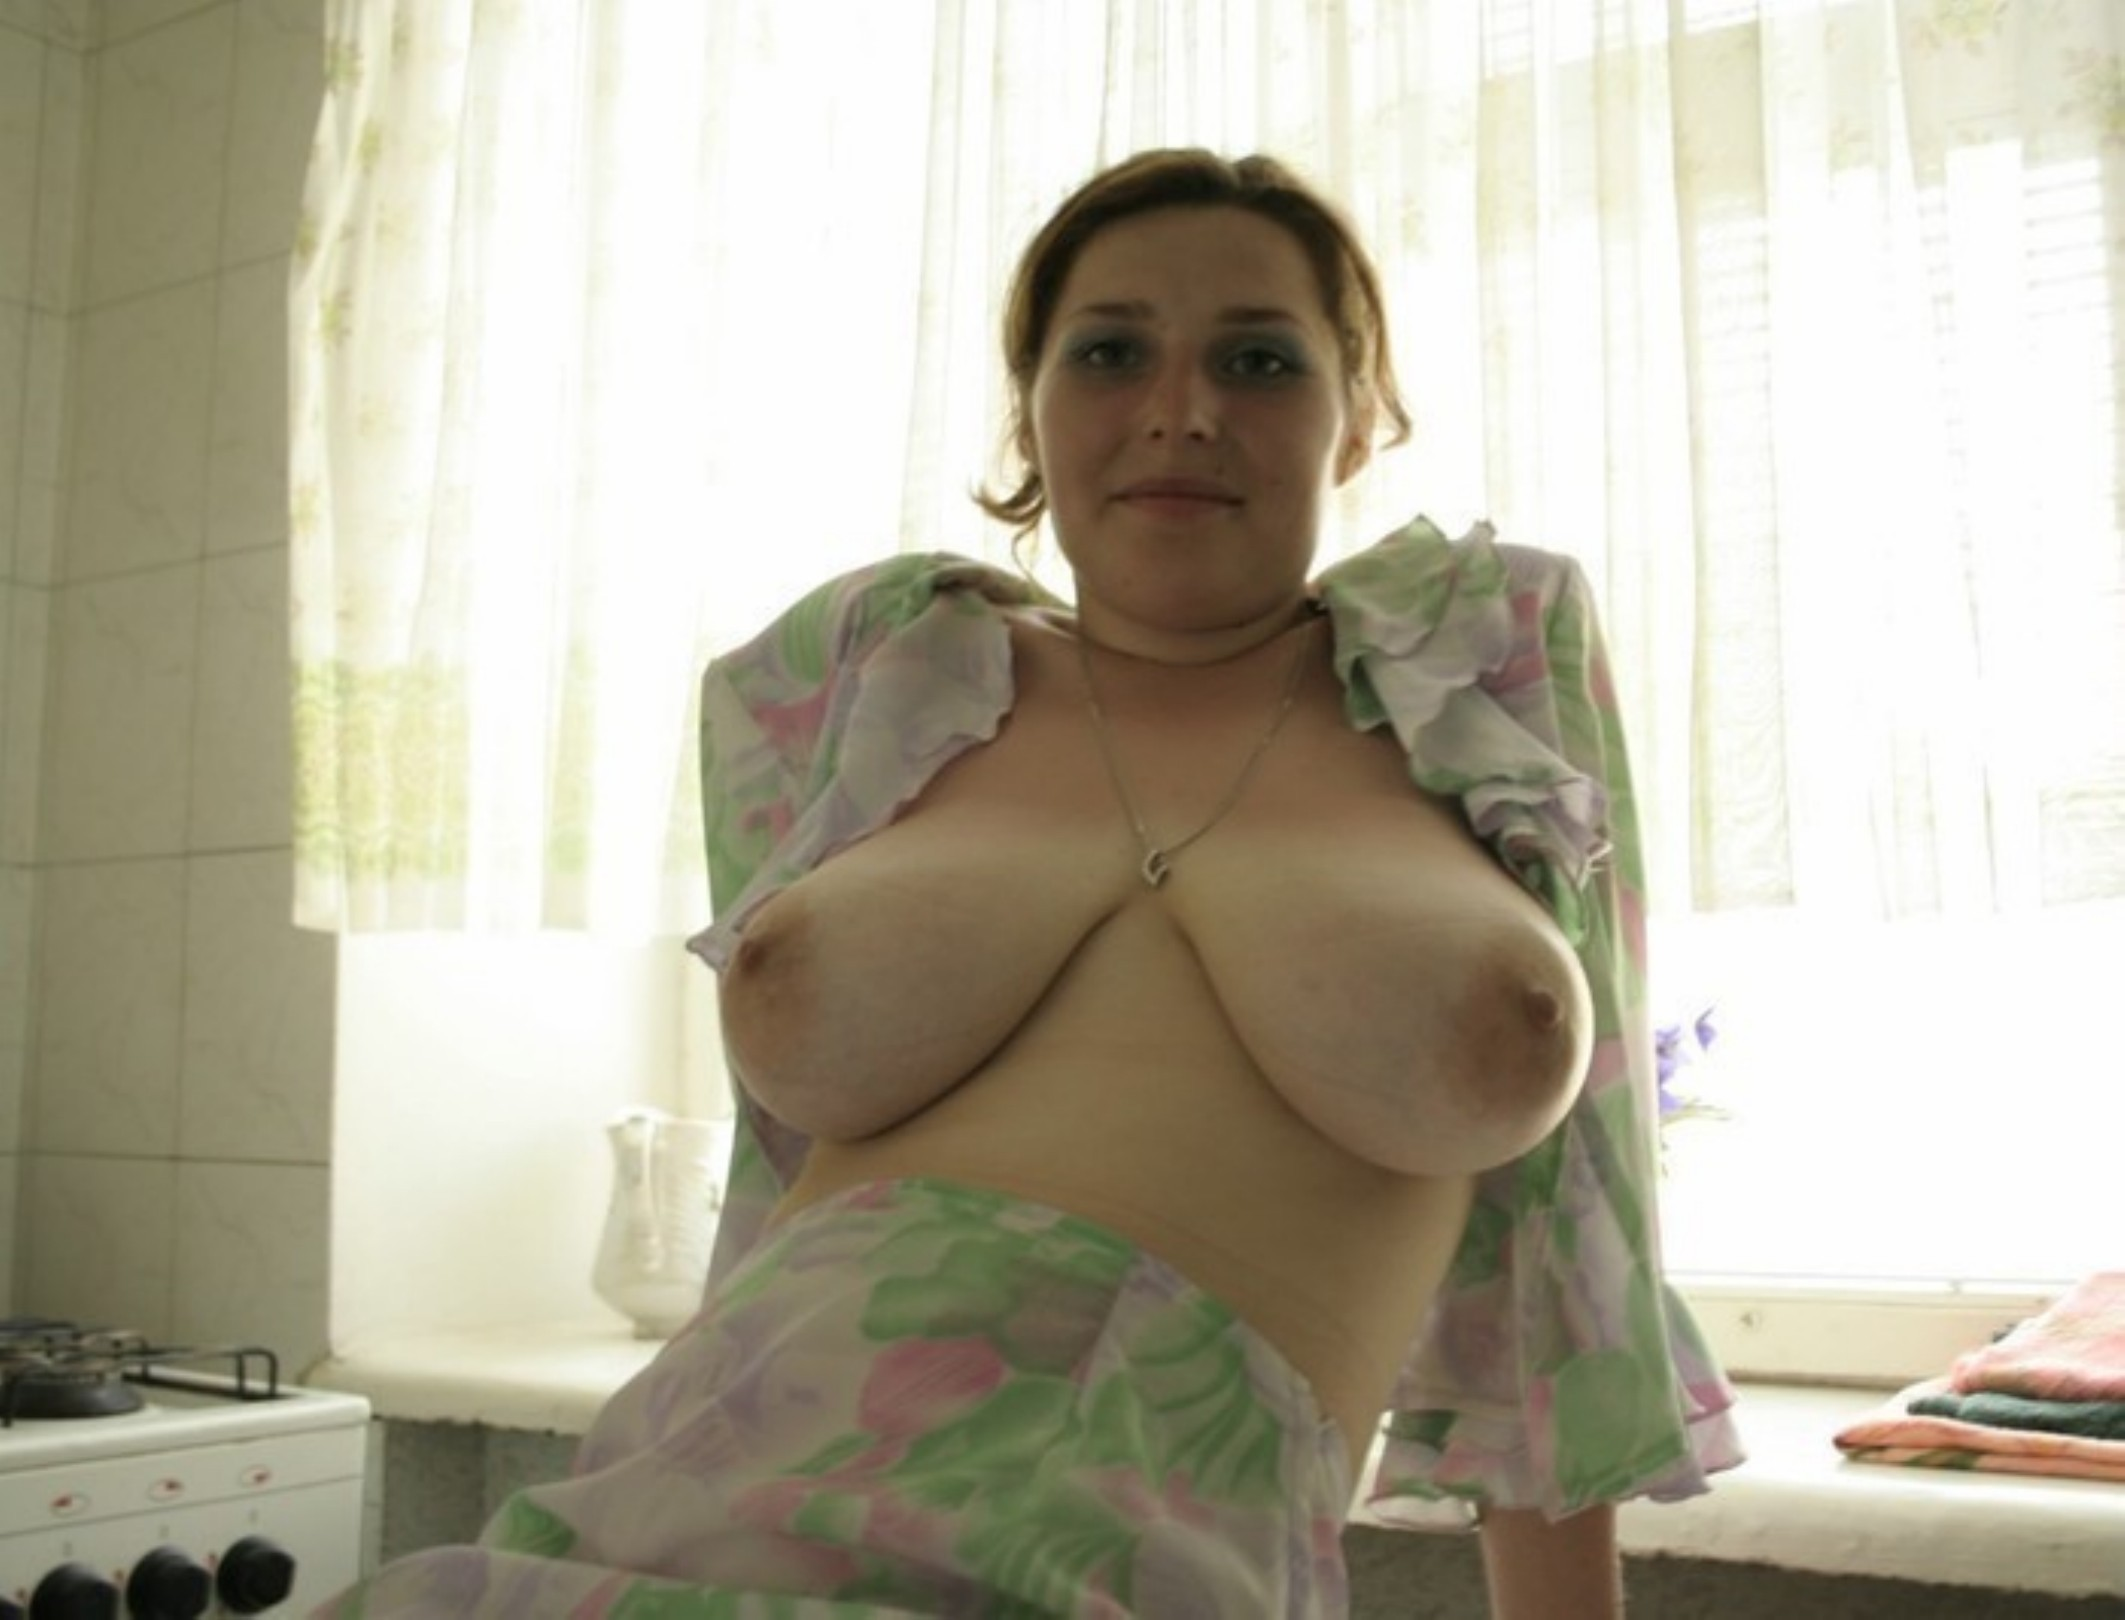 amateur big tits - thin body, huge natural boobs - motherless